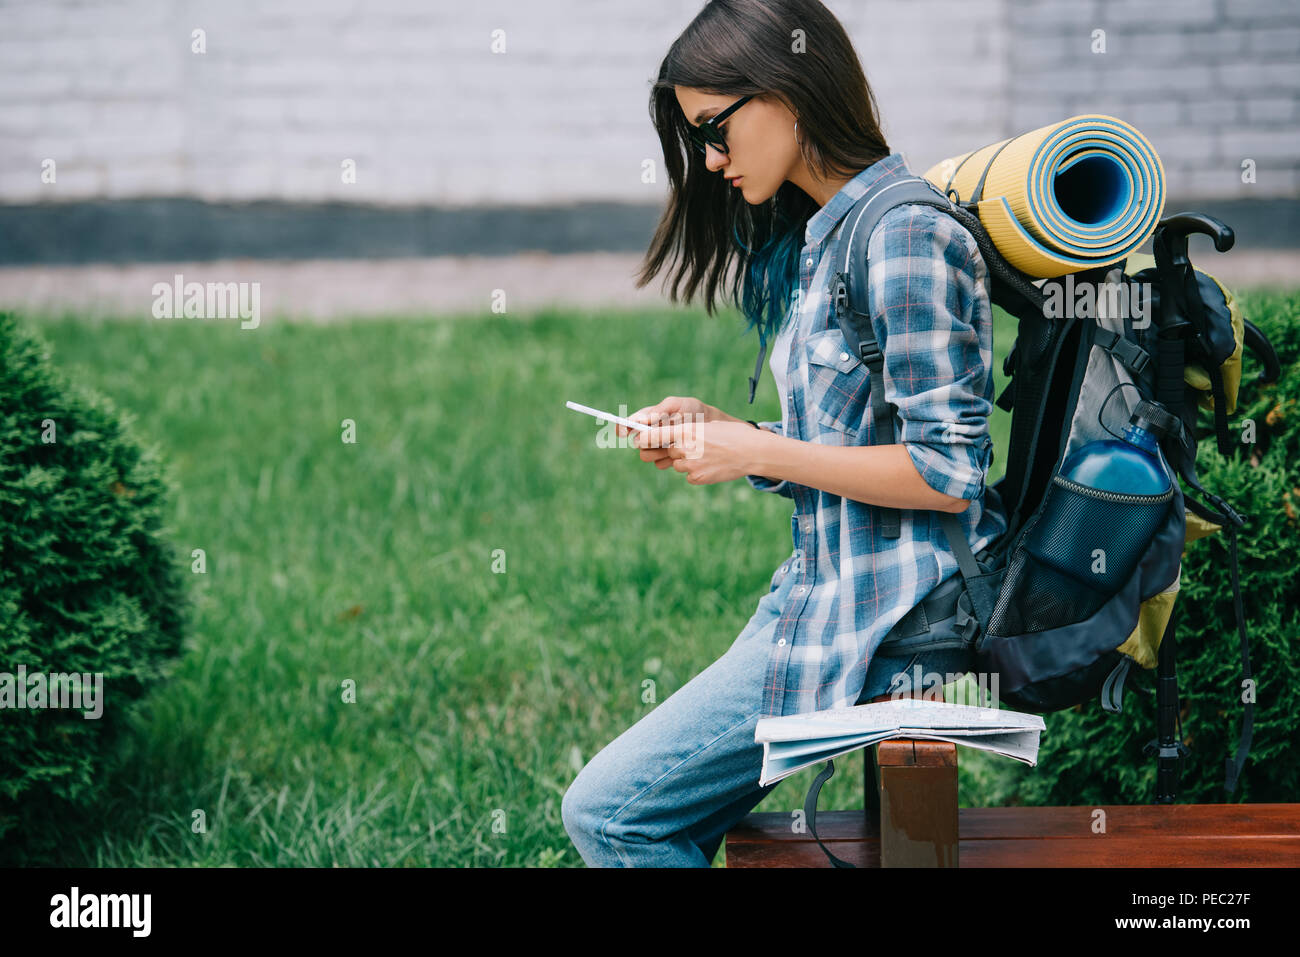 side view of beautiful young woman with backpack using smartphone - Stock Image